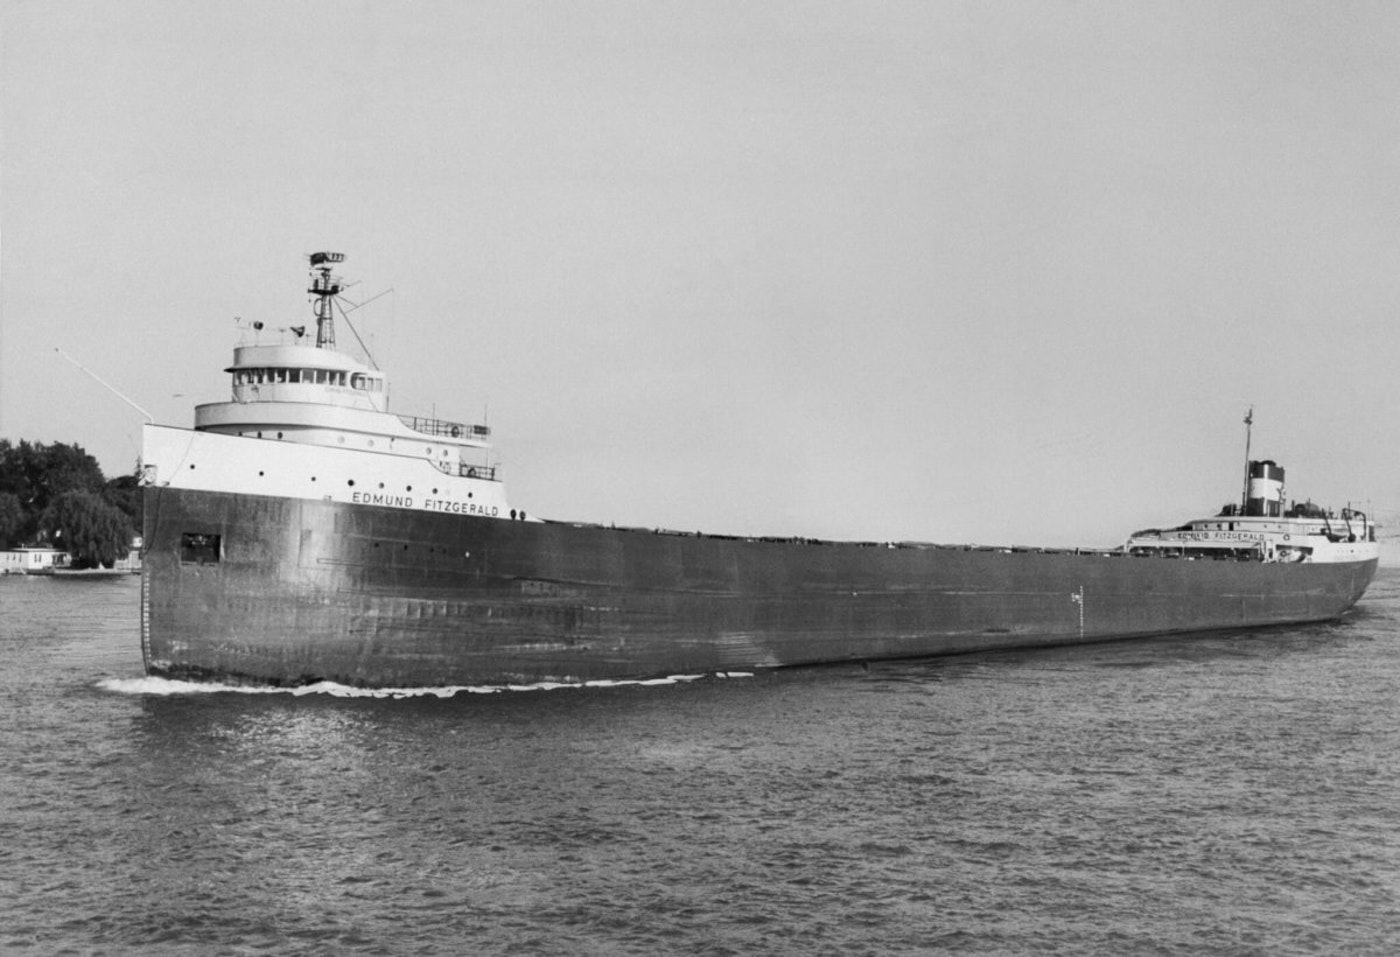 The 729-foot ore boat Edmund Fitzgerald, shown in 1972 file photo, sank with all its 29 crew perishing with it.